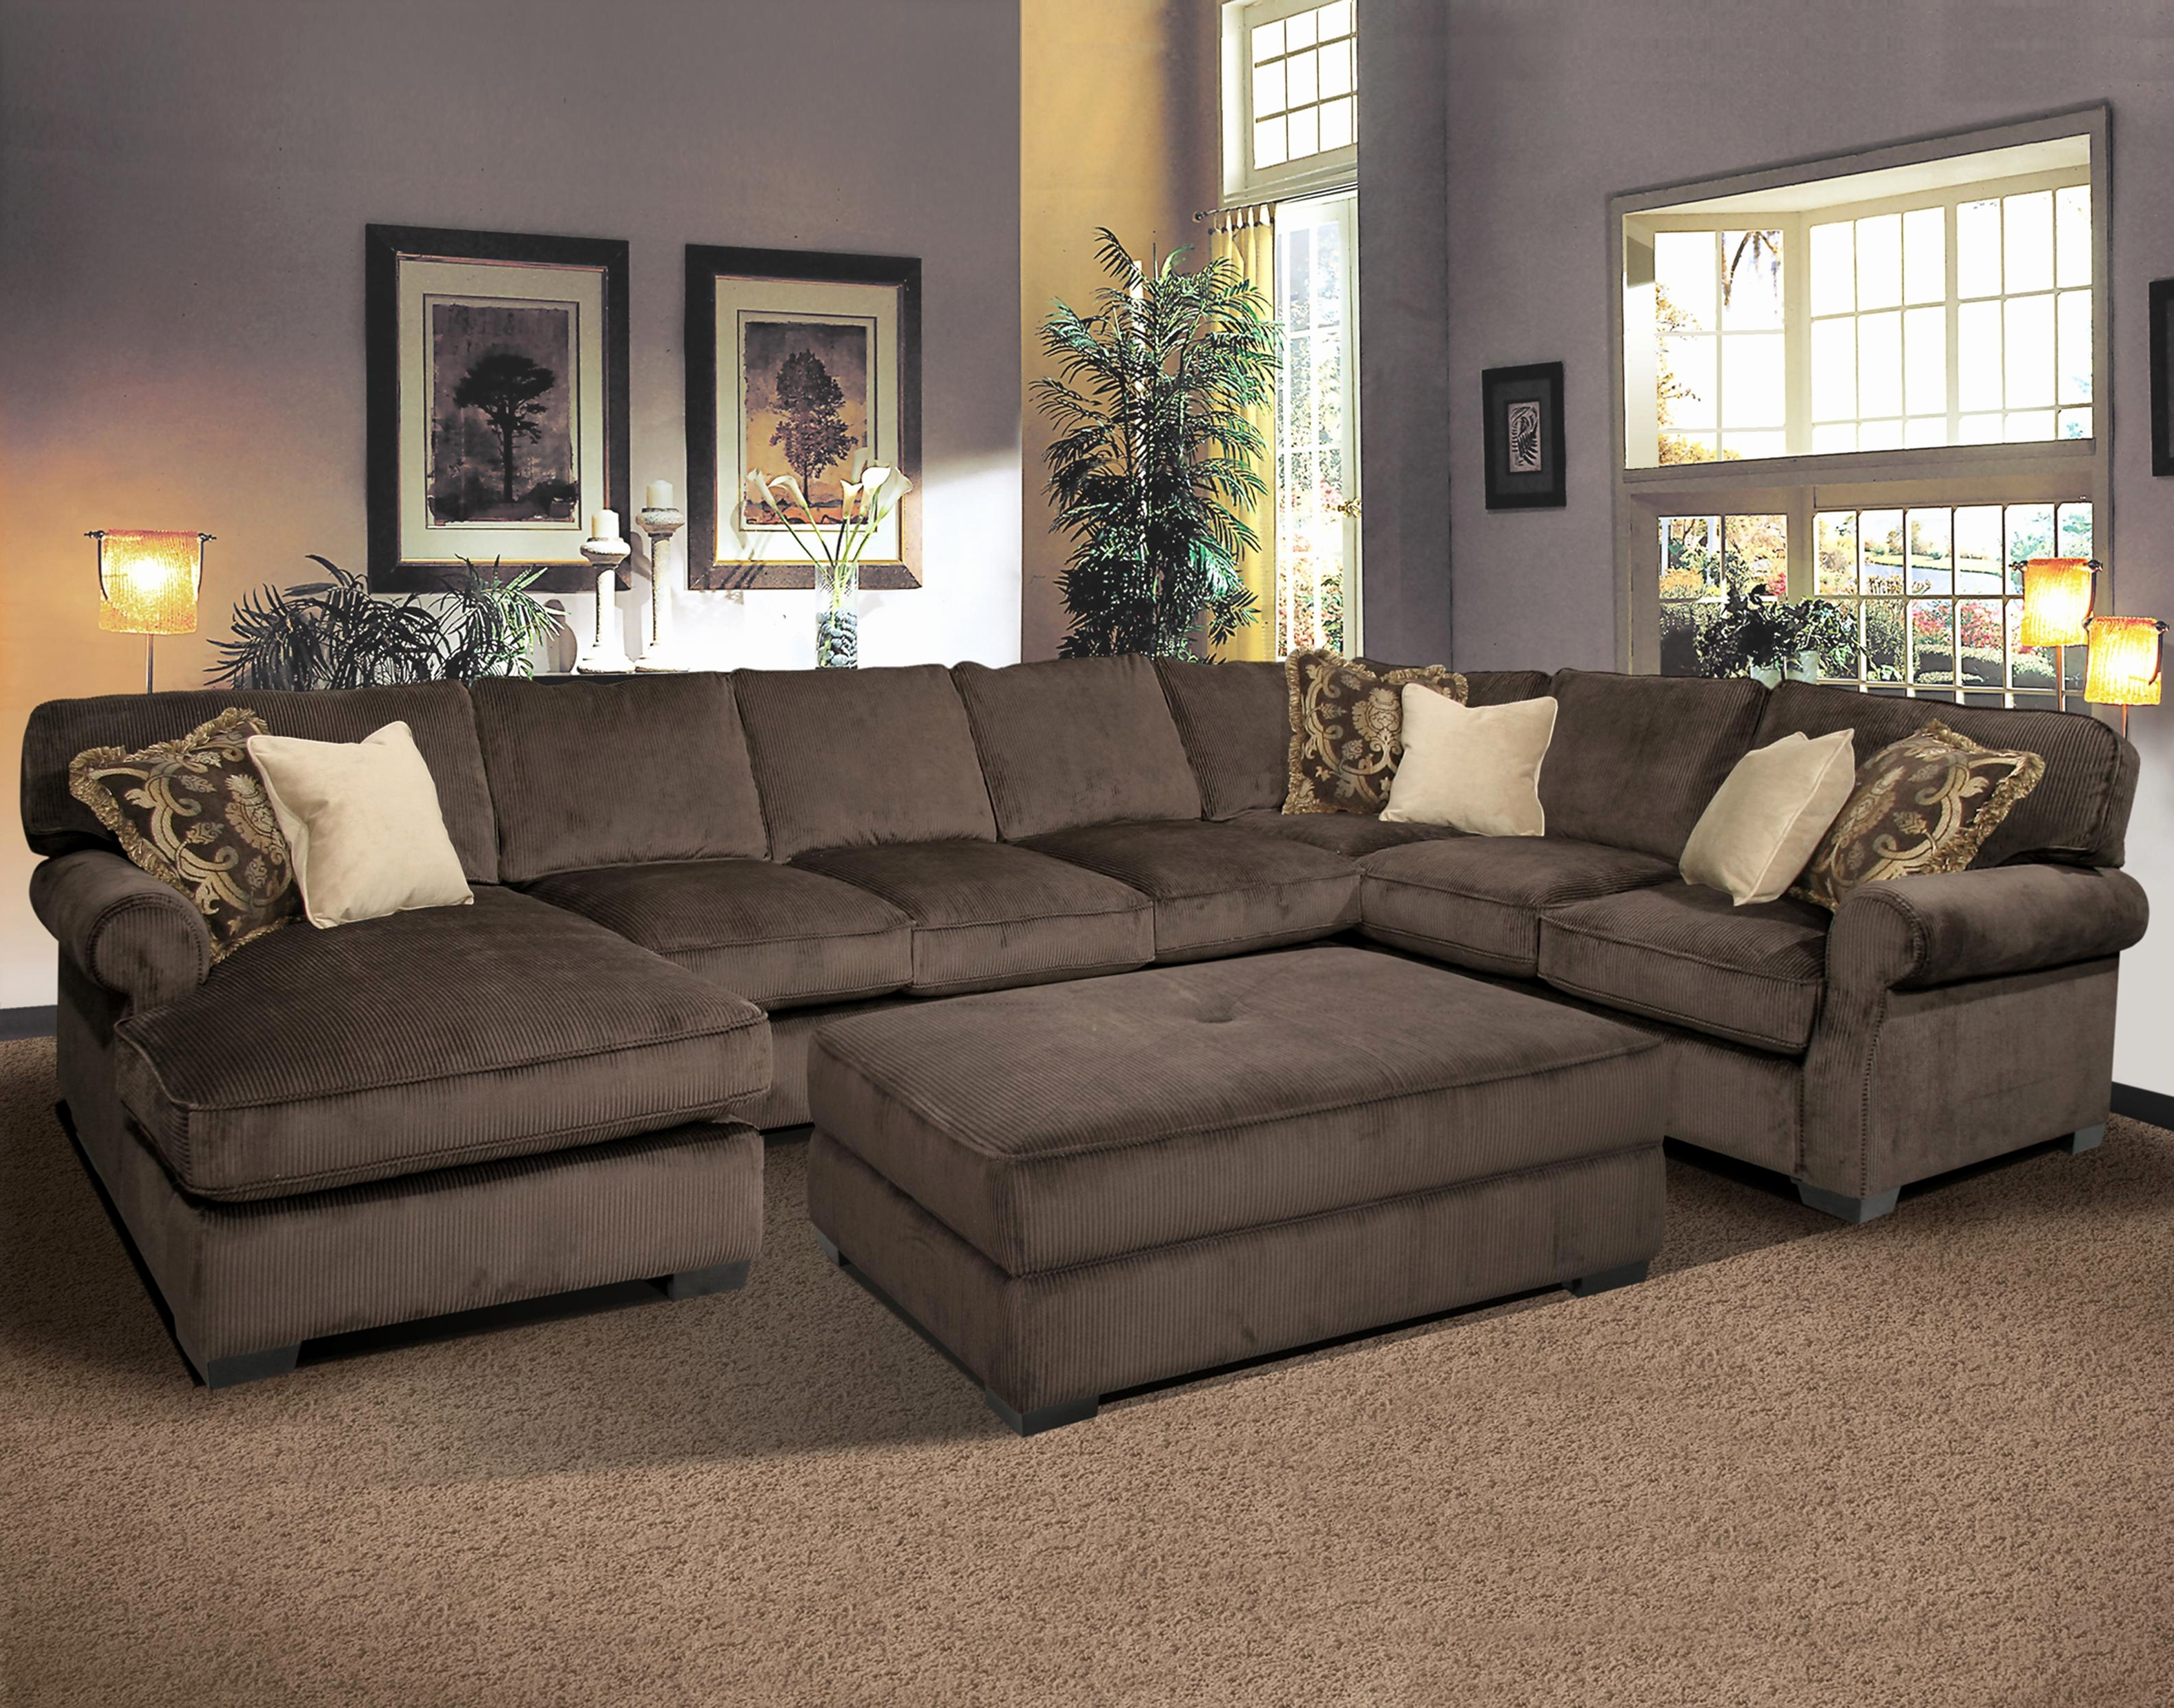 Sofas : Corner Sofa 2 Seater Sofa Quality Sofa Brands High Quality Intended For Current High Quality Sectional Sofas (View 18 of 20)